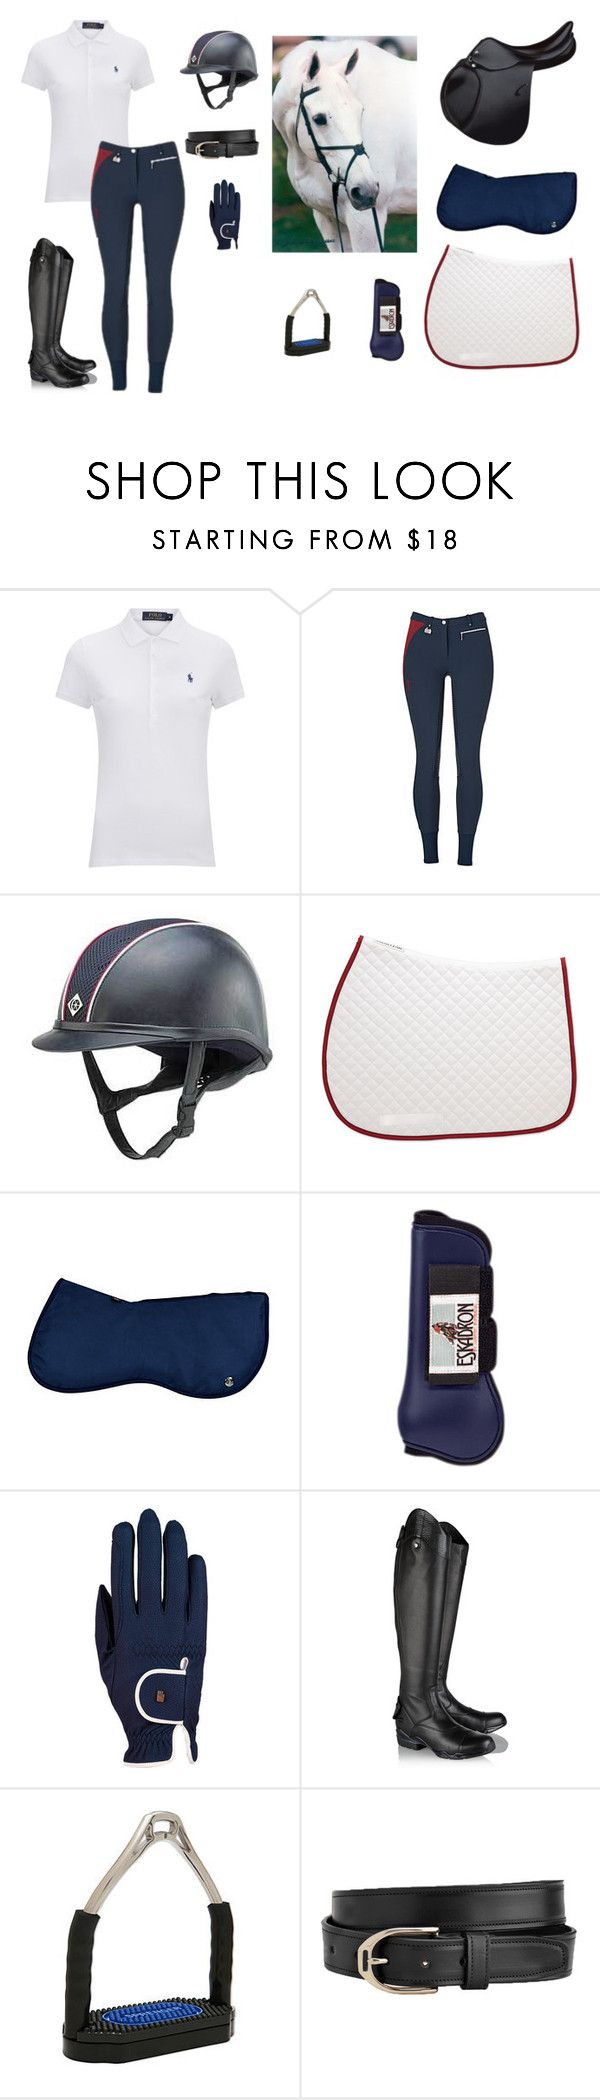 """""""Summer Jumper Clinics"""" by indypaint ❤ liked on Polyvore featuring Polo Ralph Lauren, Roeckl and Ariat"""